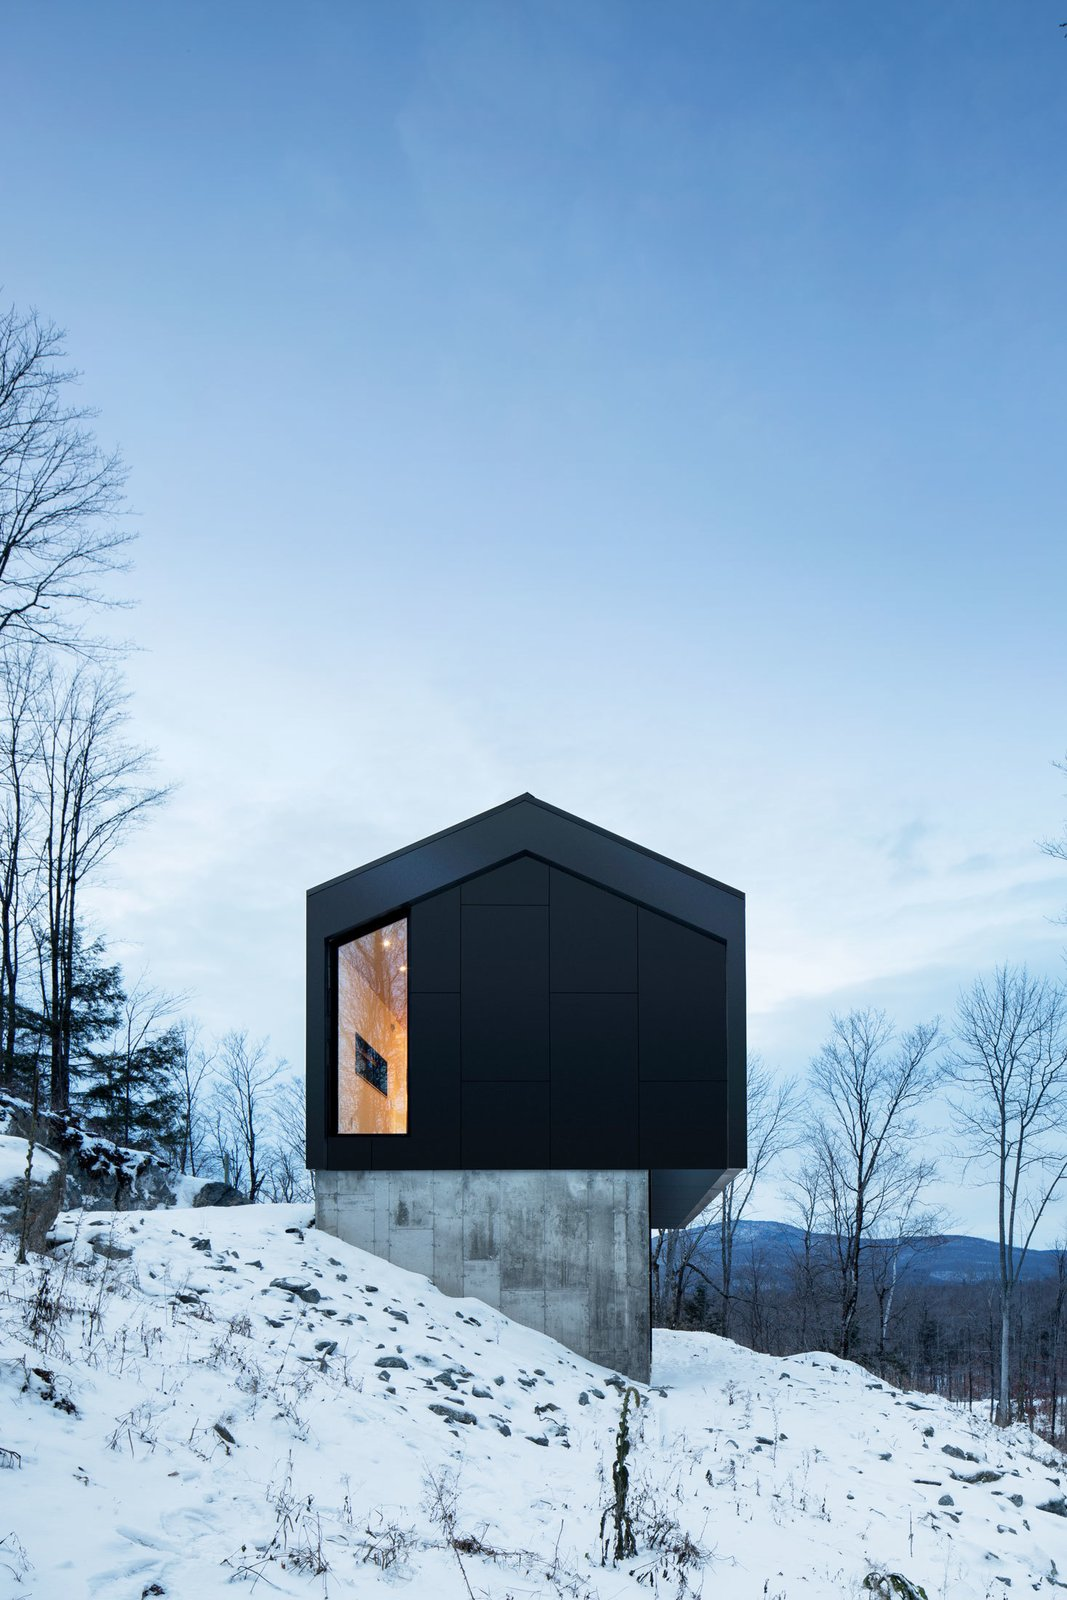 Exterior, House Building Type, Metal Siding Material, Metal Roof Material, Gable RoofLine, and Cabin Building Type Architects Stéphane Rasselet and David Dworkind delivered with a strikingly simple concept, anchoring two stacked, rectangular volumes into a steep mountainside surrounded by awe-inspiring vistas.